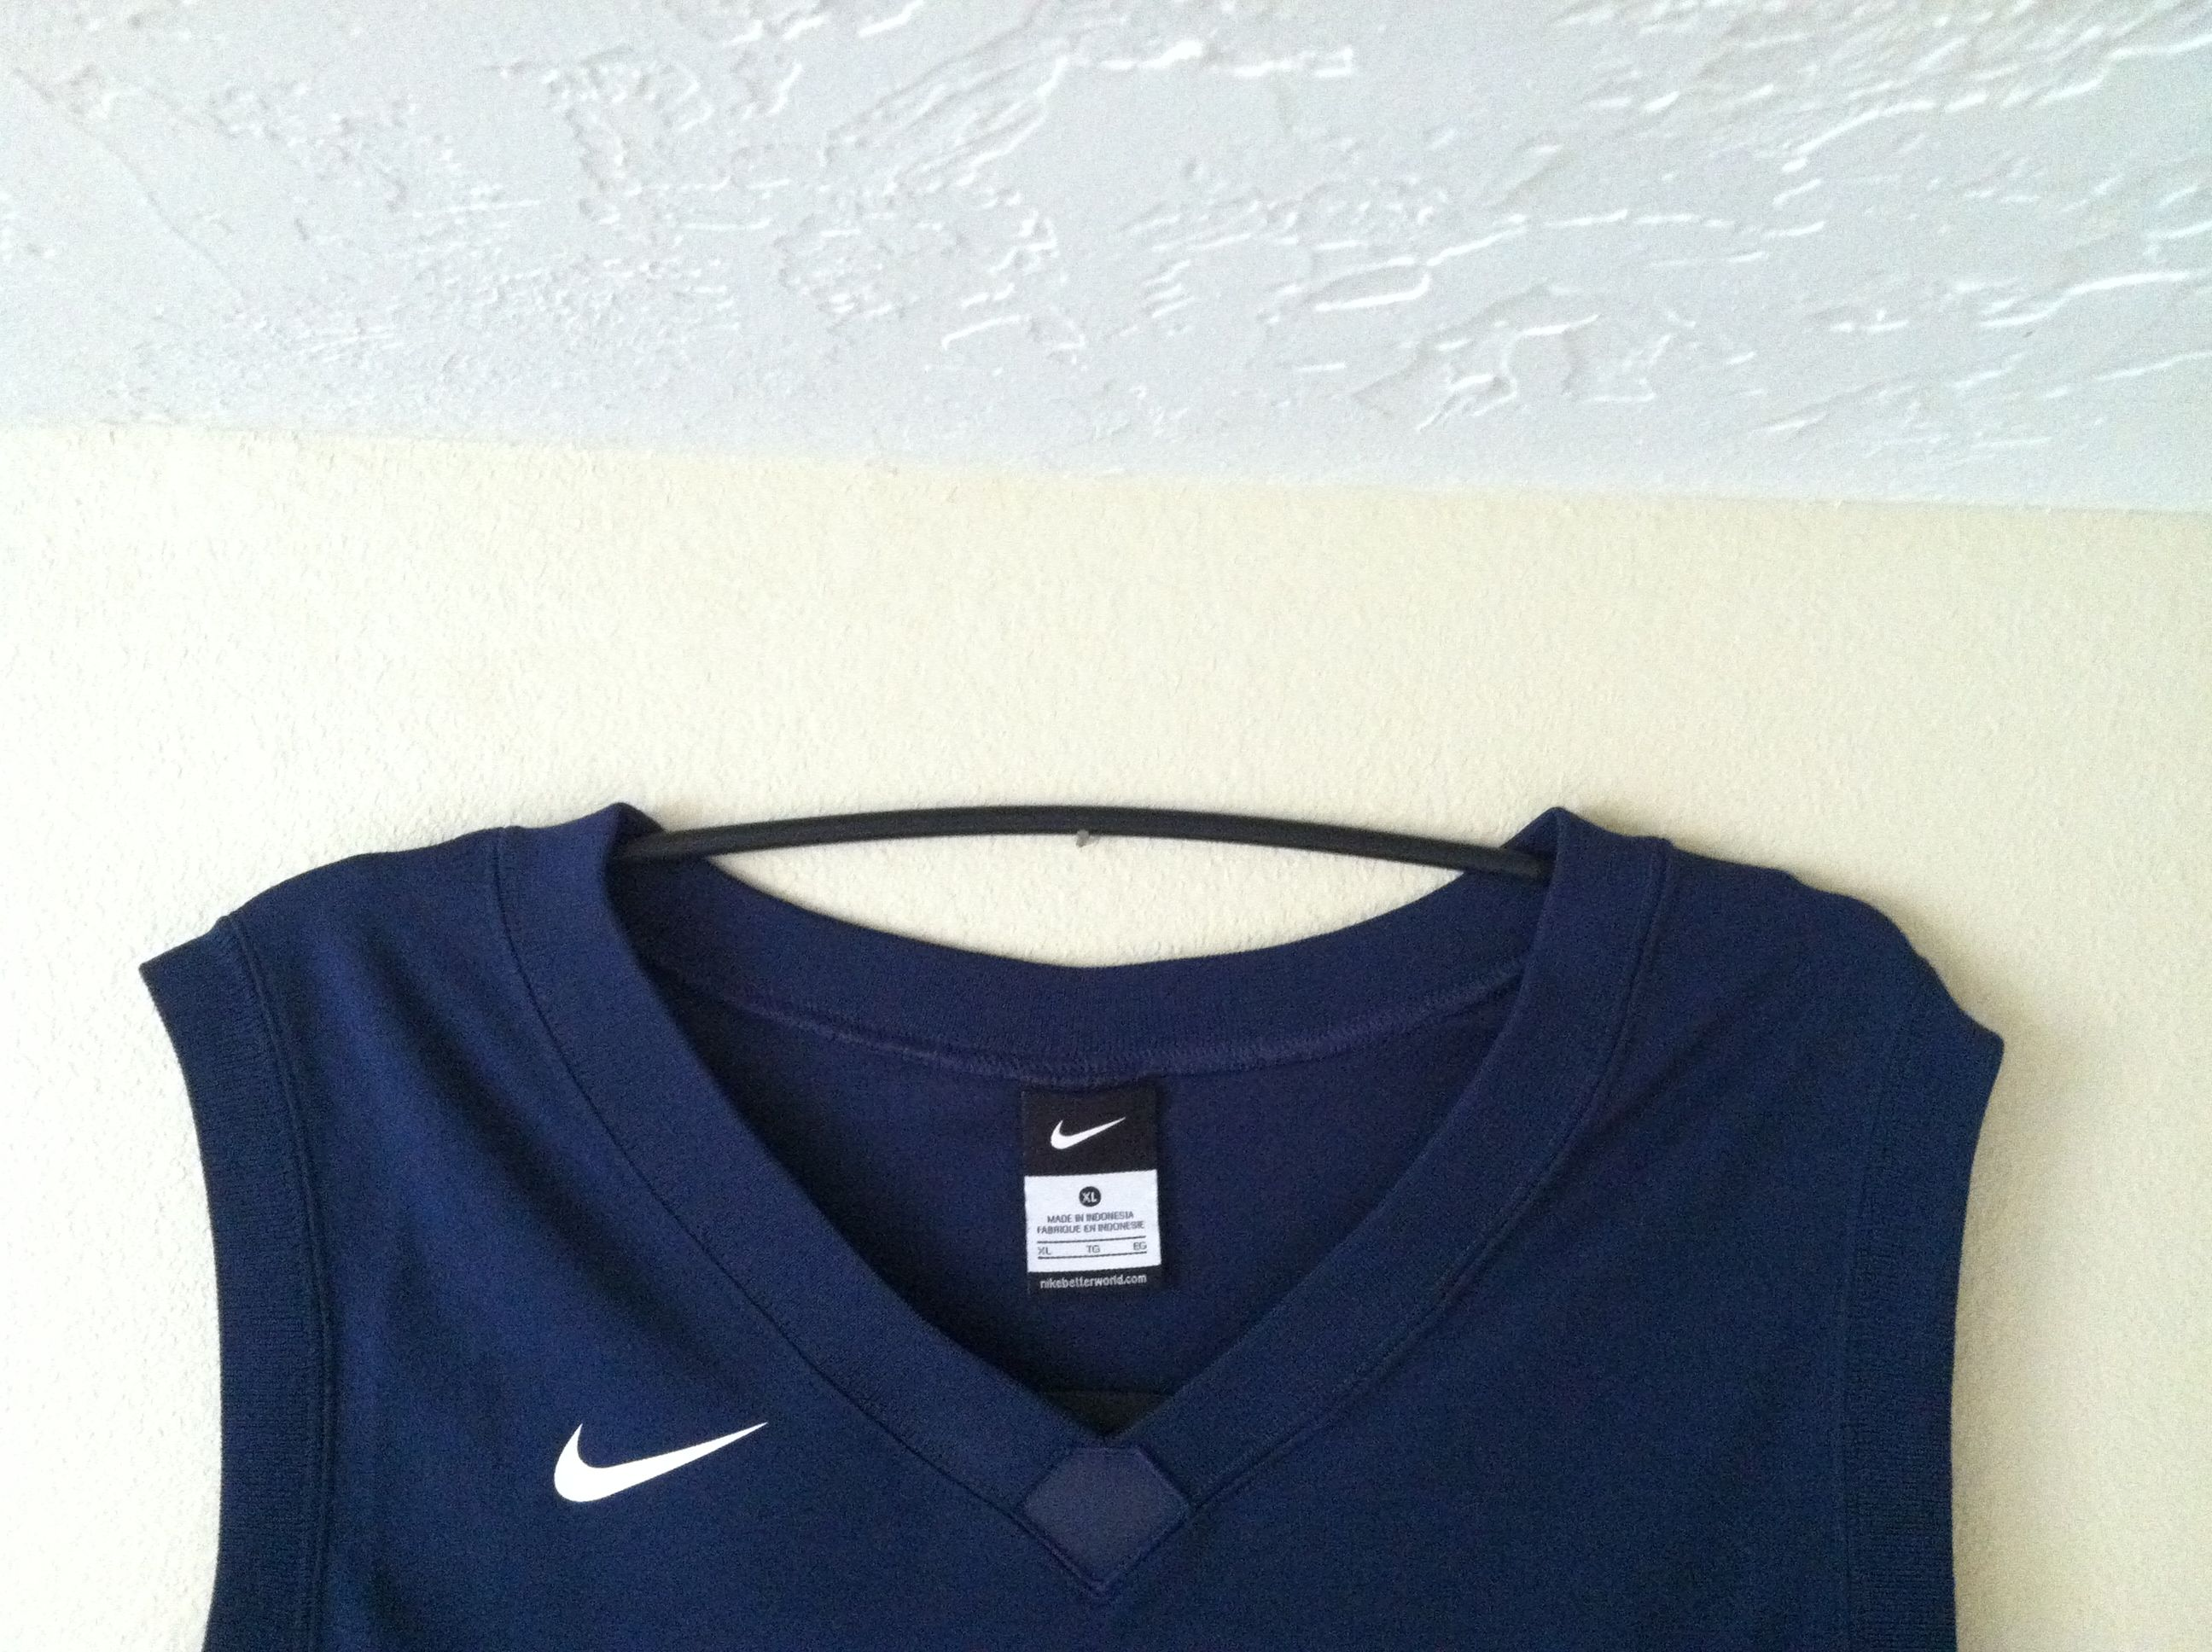 Hang A Sports Jersey With An Upside Down Hanger Instead Of